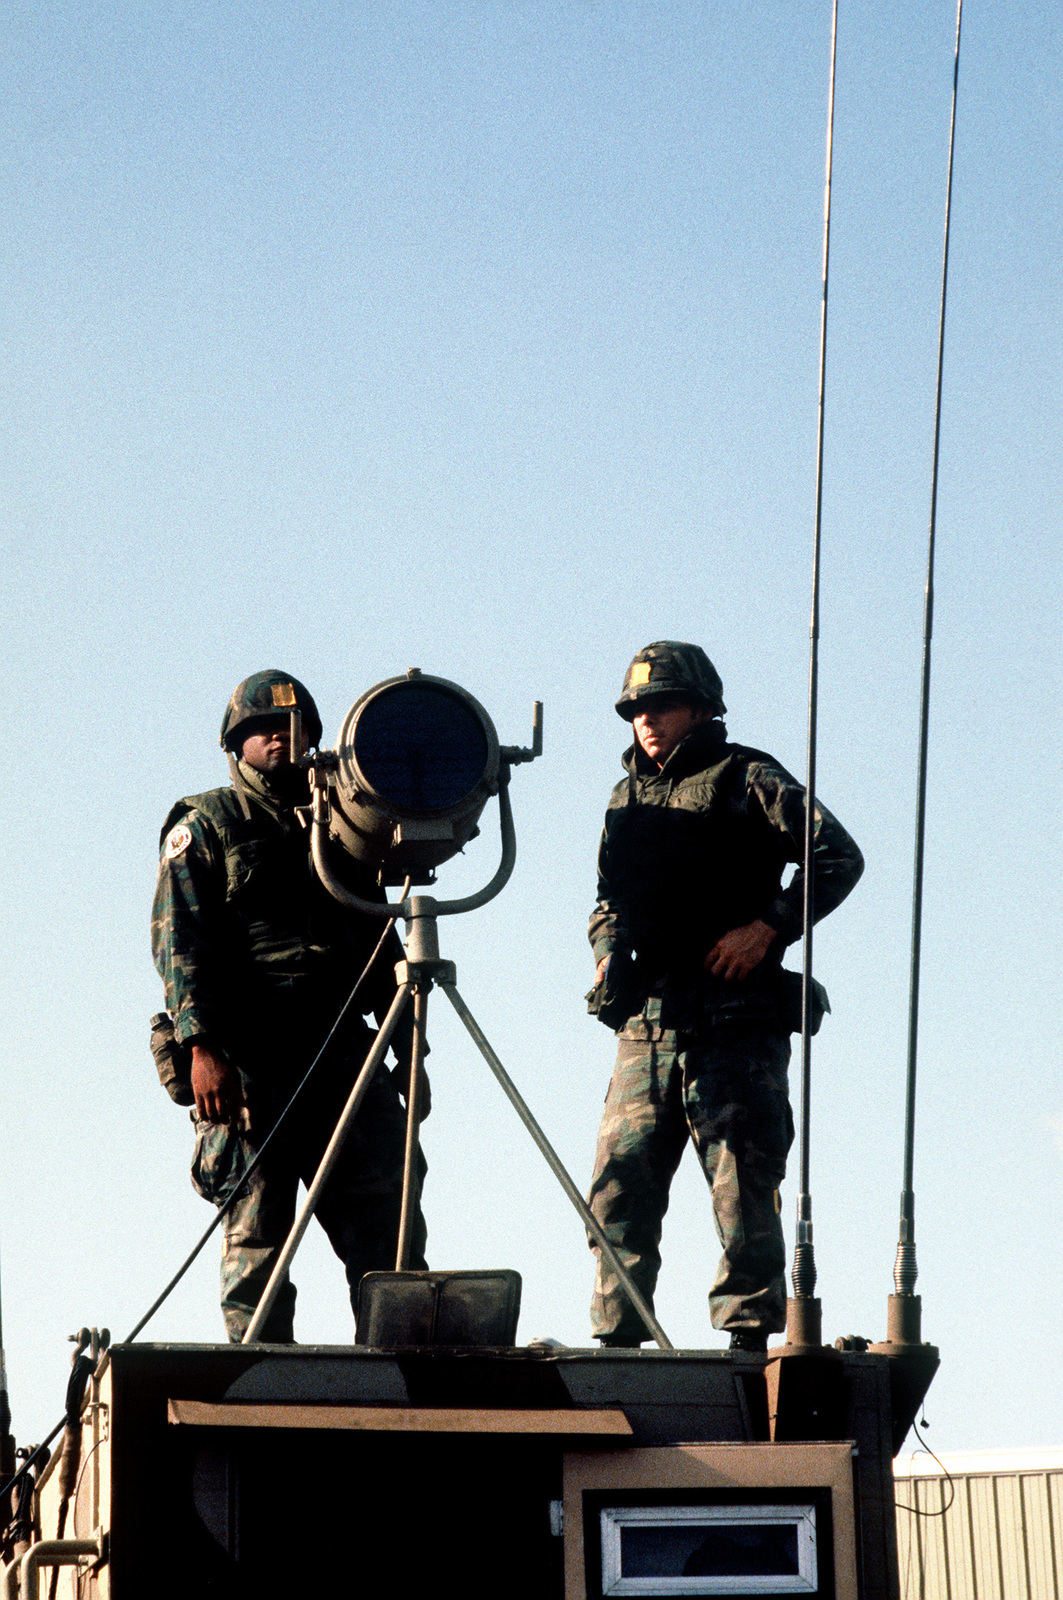 Two Marines from the 32nd Marine Amphibious Unit (32nd MAU) stand watch on the roof of a mobile communications station, during a multinational peacekeeping operation. The unit was sent here after a confrontation took place between Israeli forces and the Palestine Liberation Organization